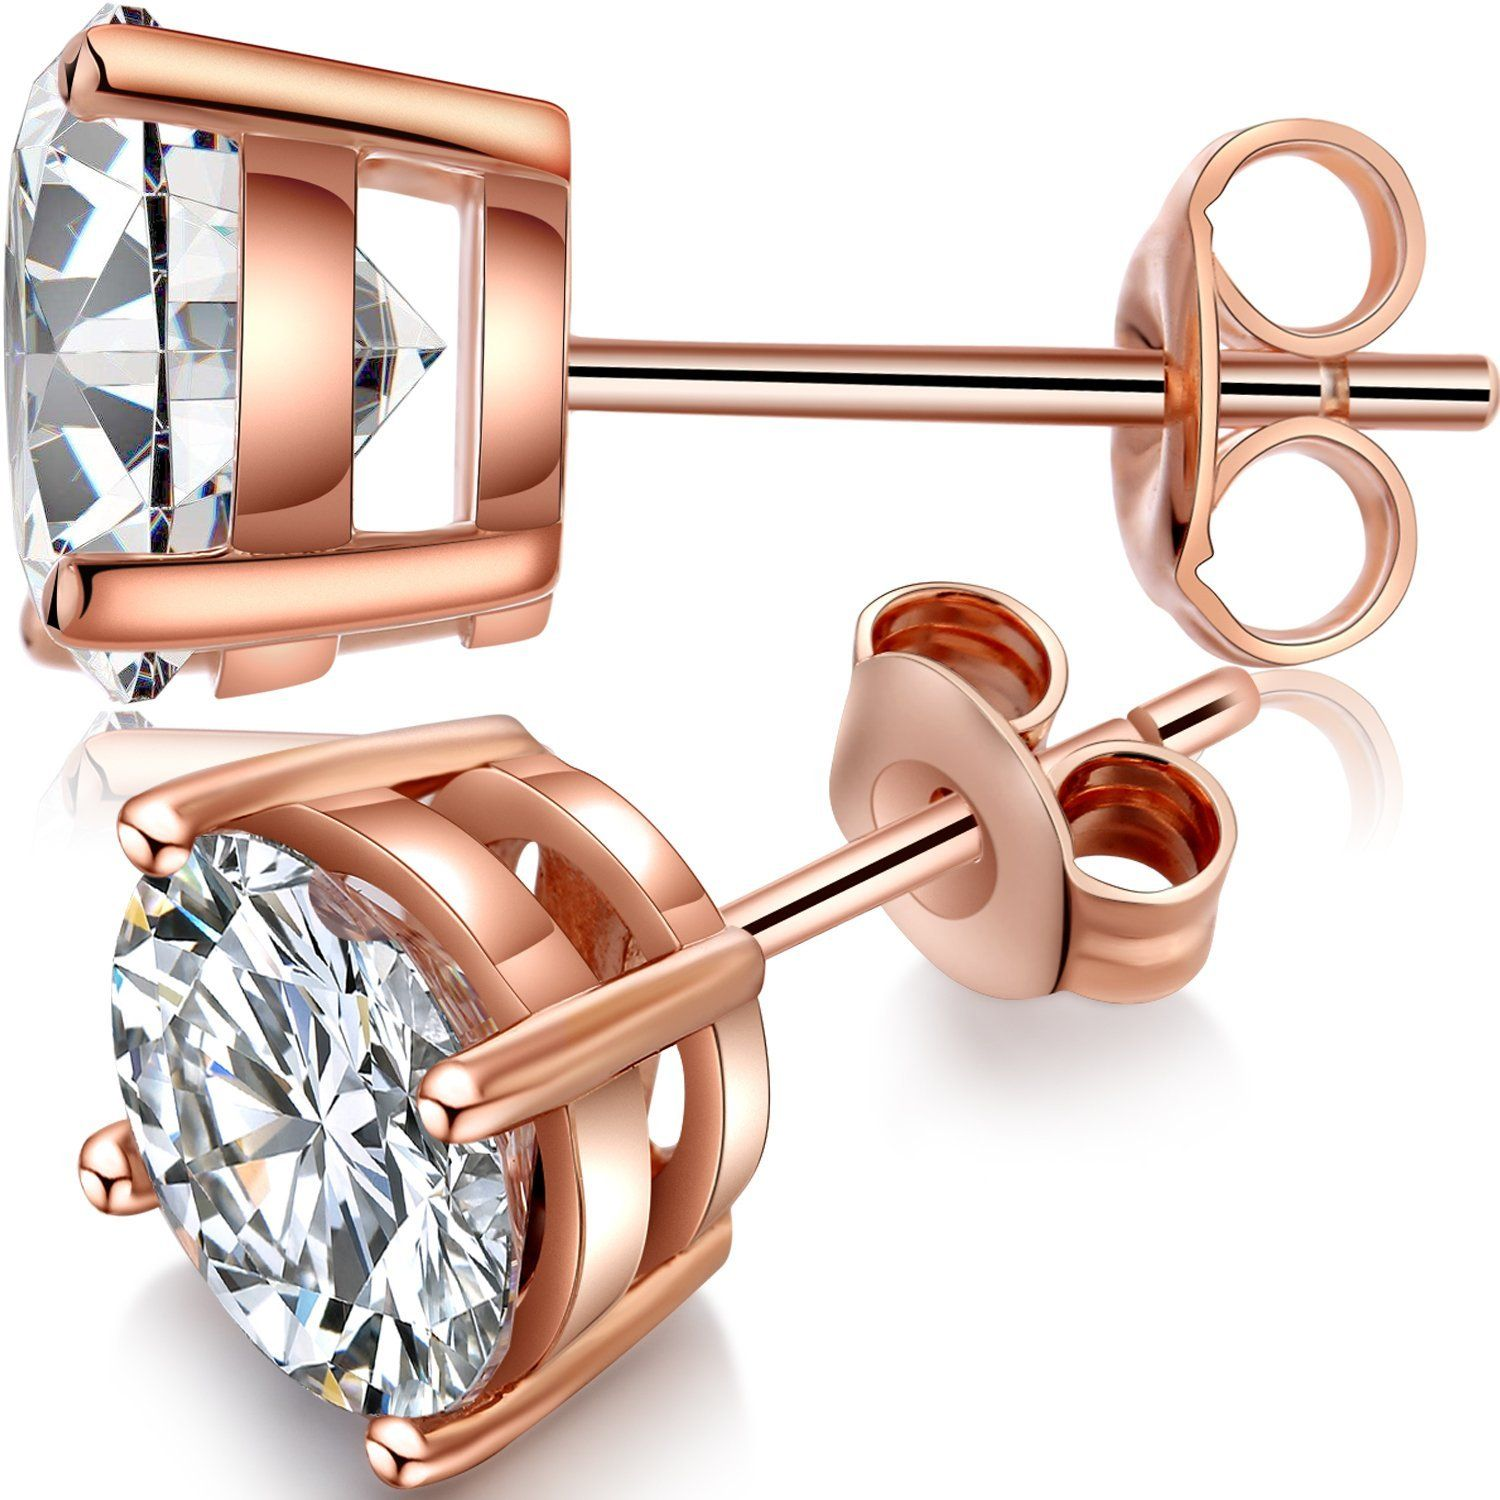 dd1510661 Han han 925 Sterling Silver Round Cut Cubic Zirconia Gem Stud Earrings with  Rose Gold Plated